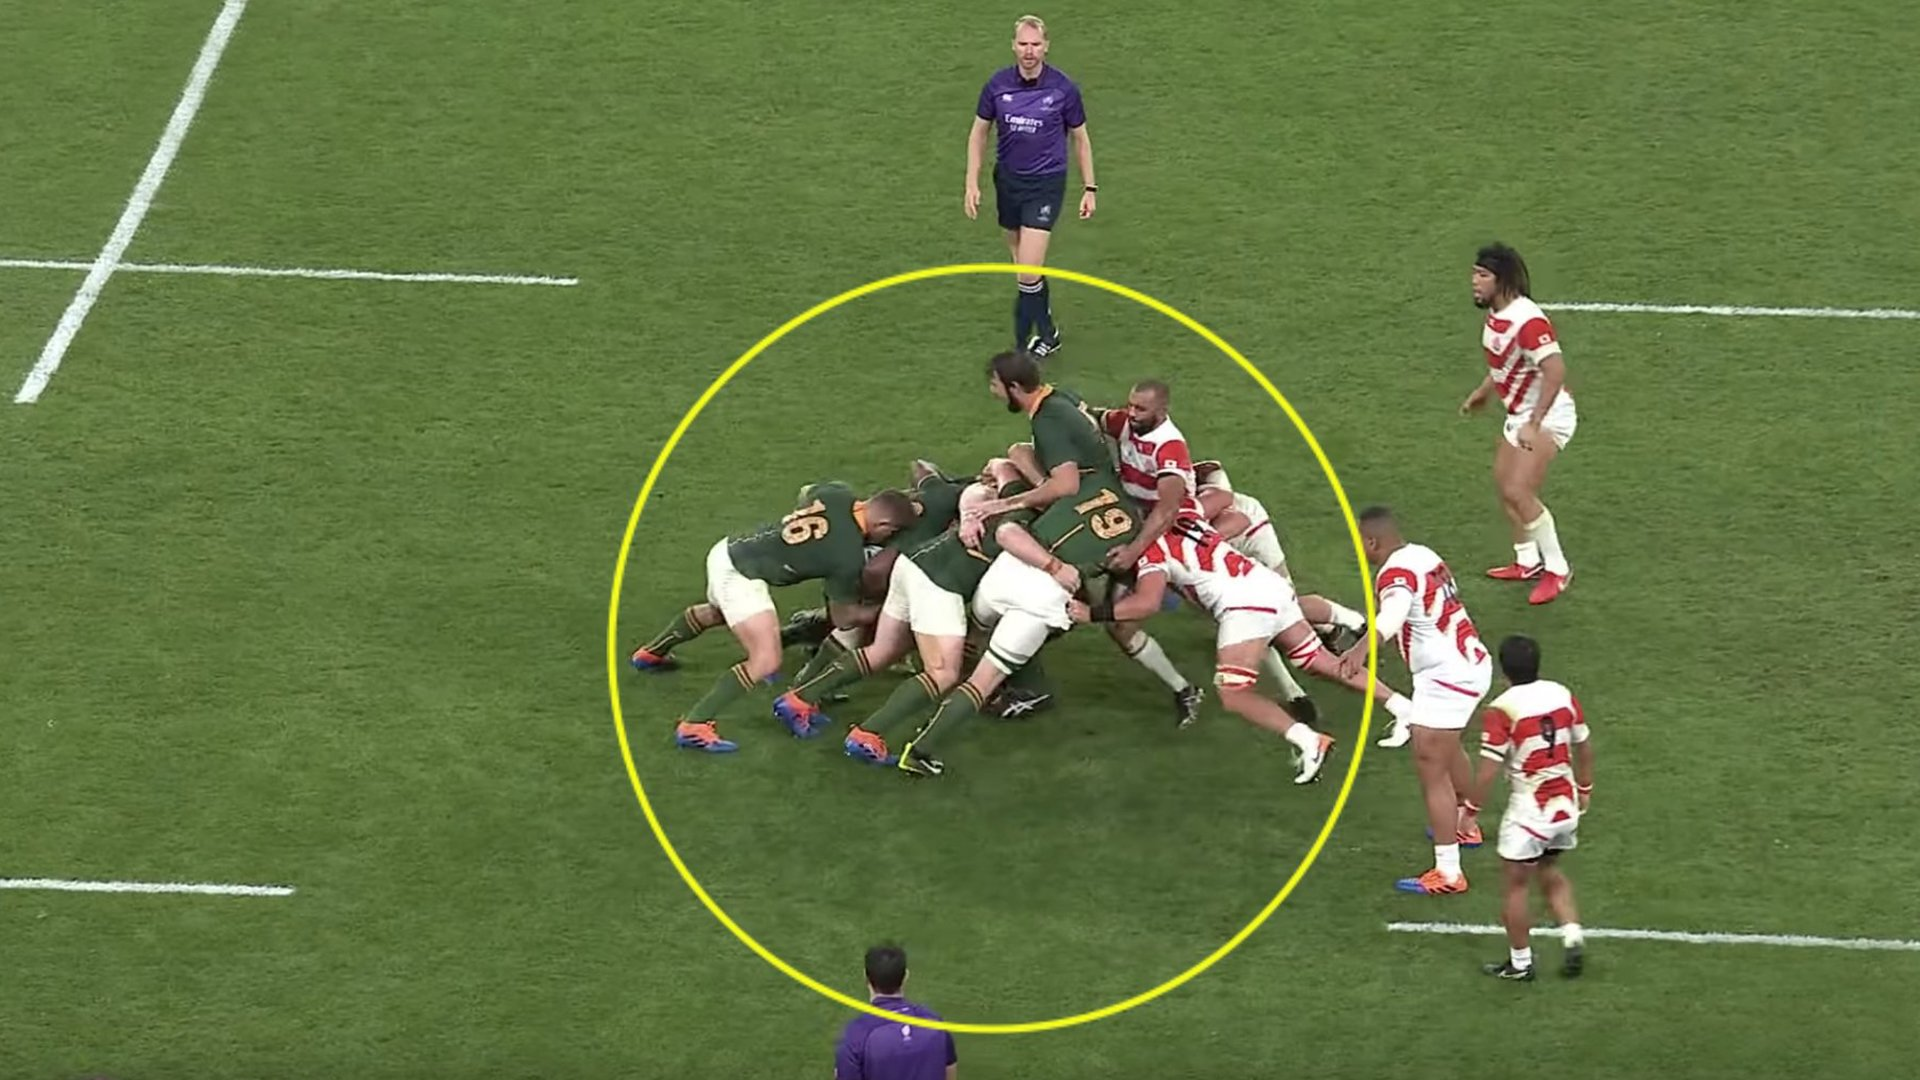 The South African maul at the Rugby World Cup was simply unstoppable